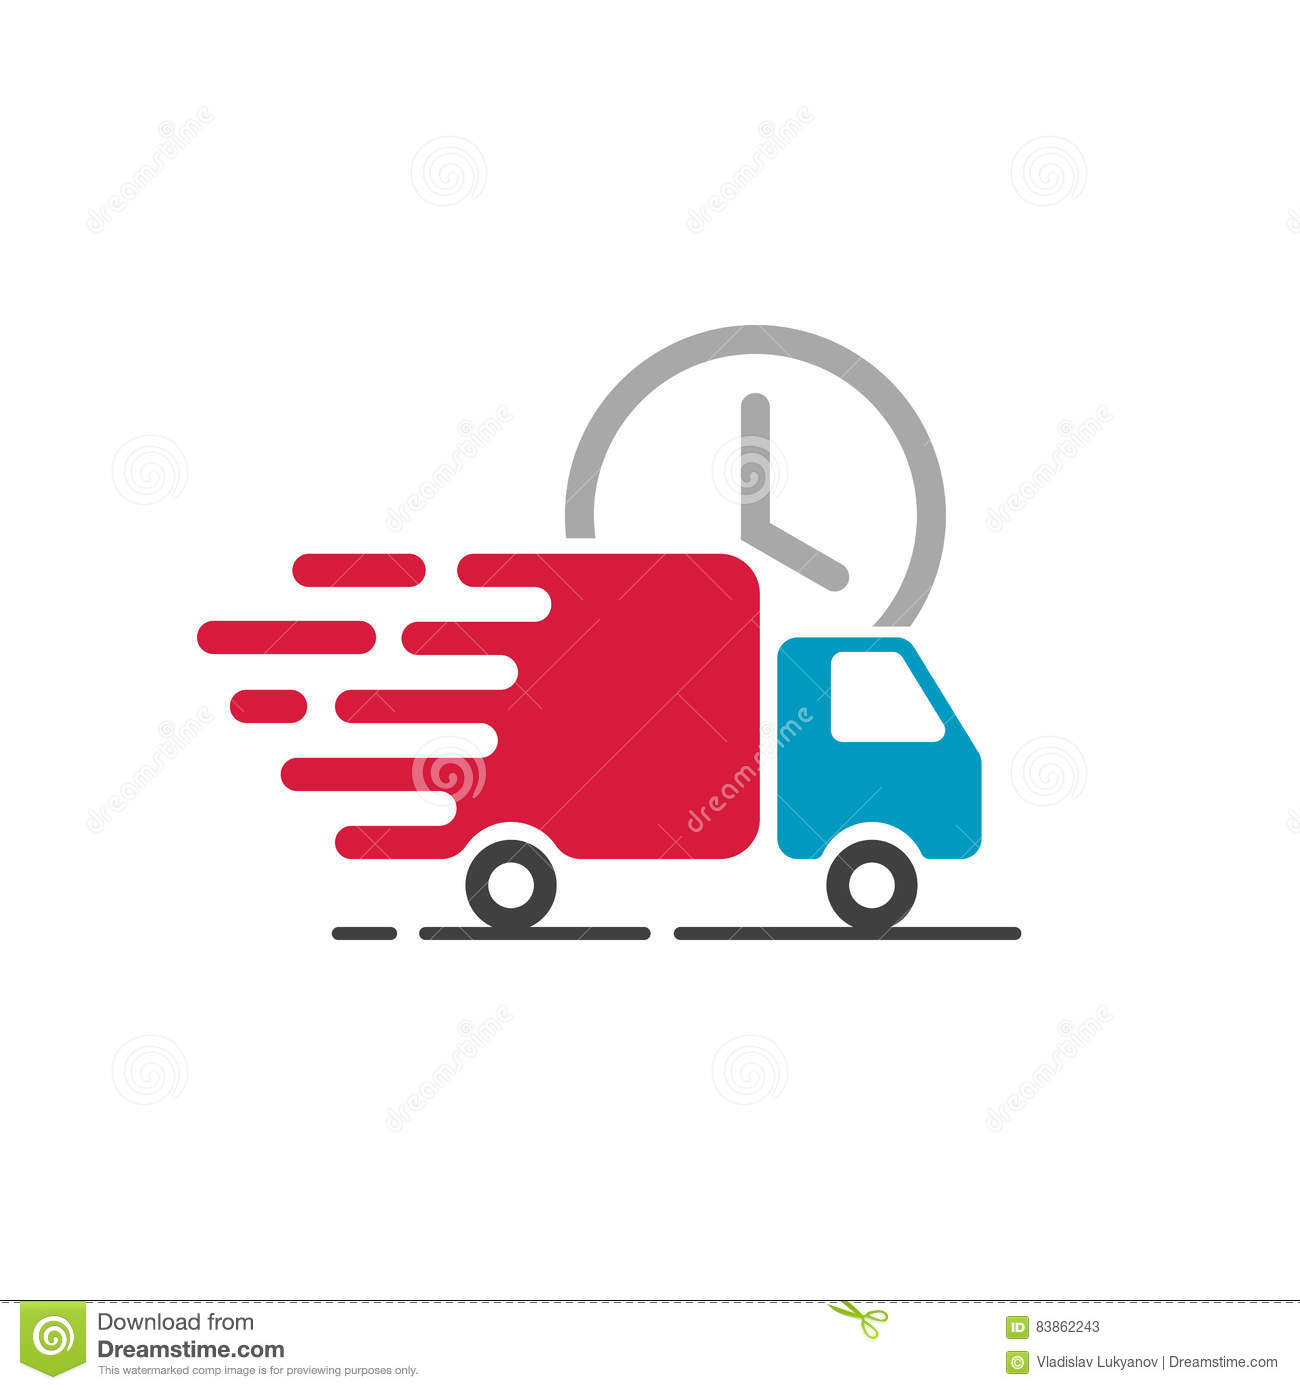 Shipping Delivery: Delivery Truck Icon Vector, Cargo Van Moving, Fast